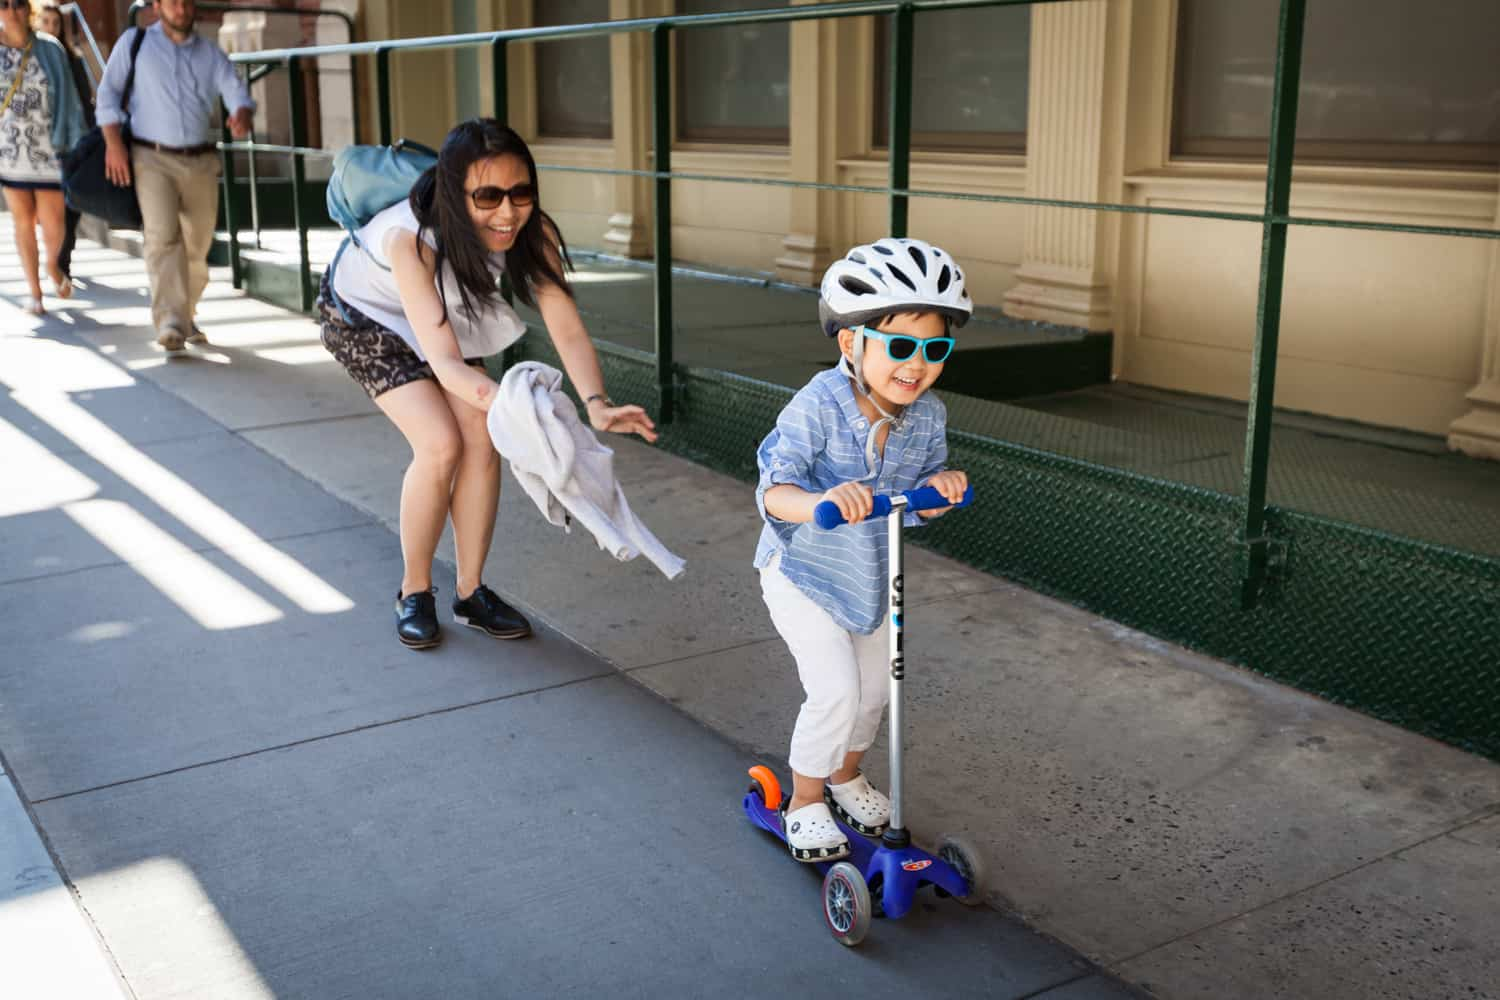 Mother pushing little boy on scooter